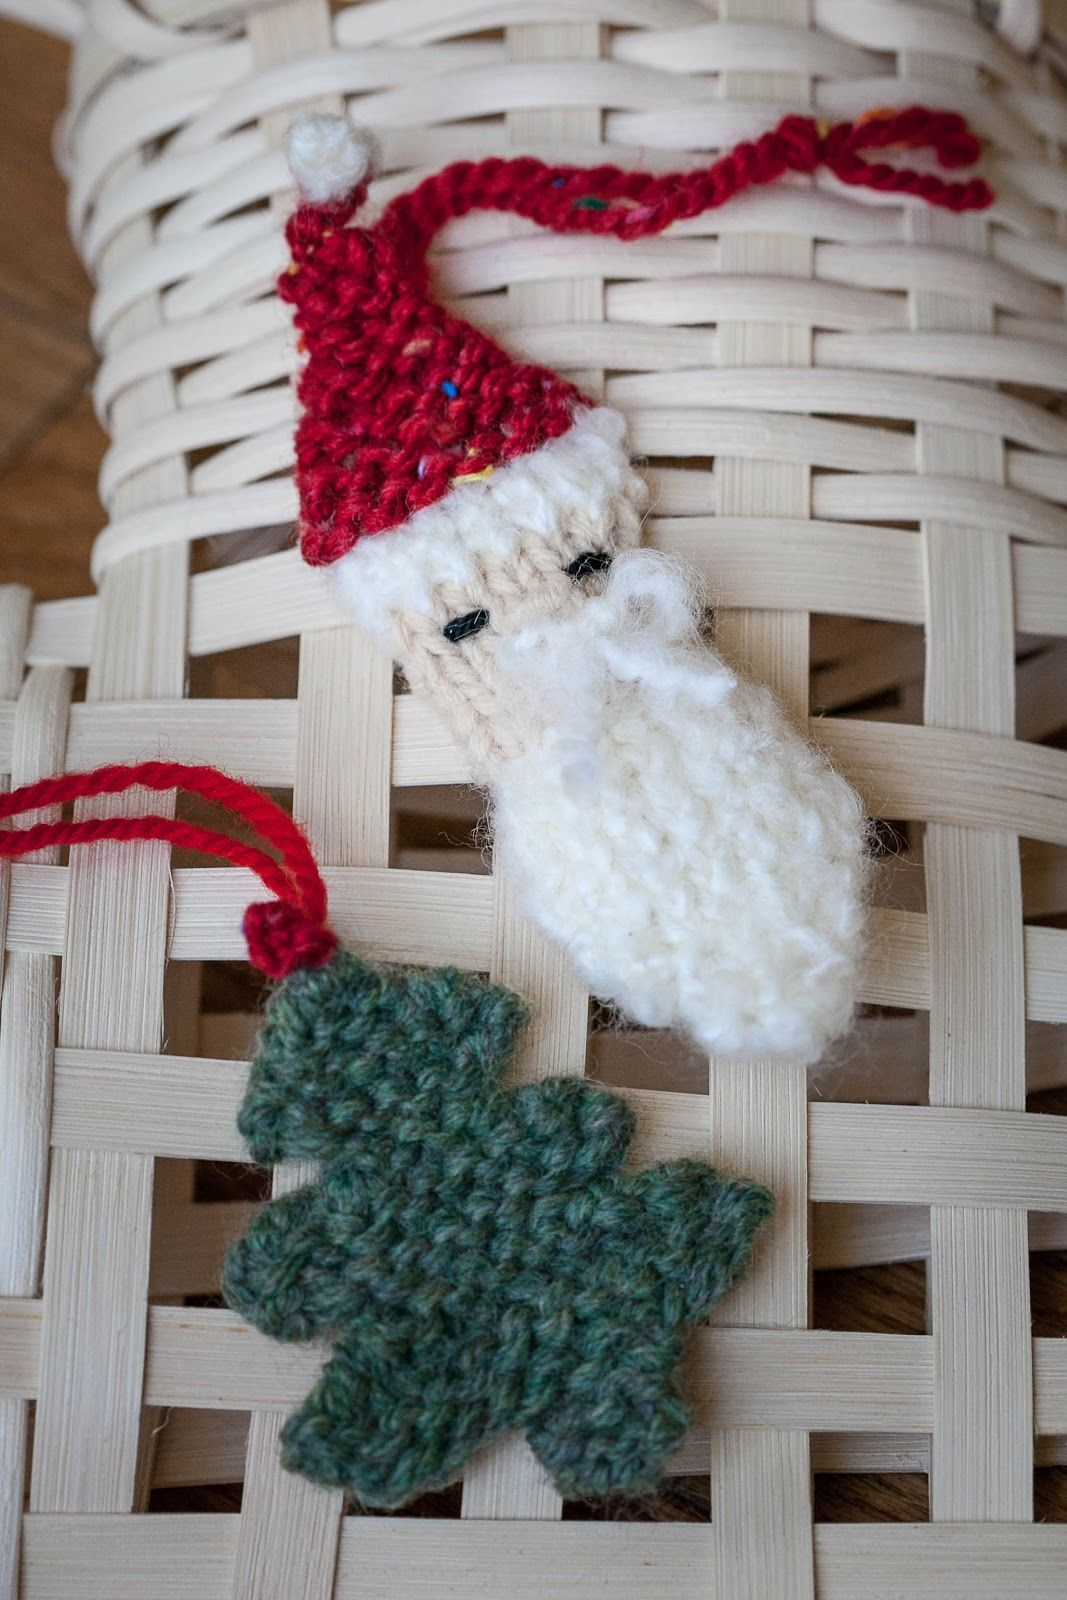 The Holidays Are Here I Thought I Would Kick Off The Season With A Couple Of Loo Knit Christmas Ornaments Knitted Christmas Decorations Loom Knitting Projects